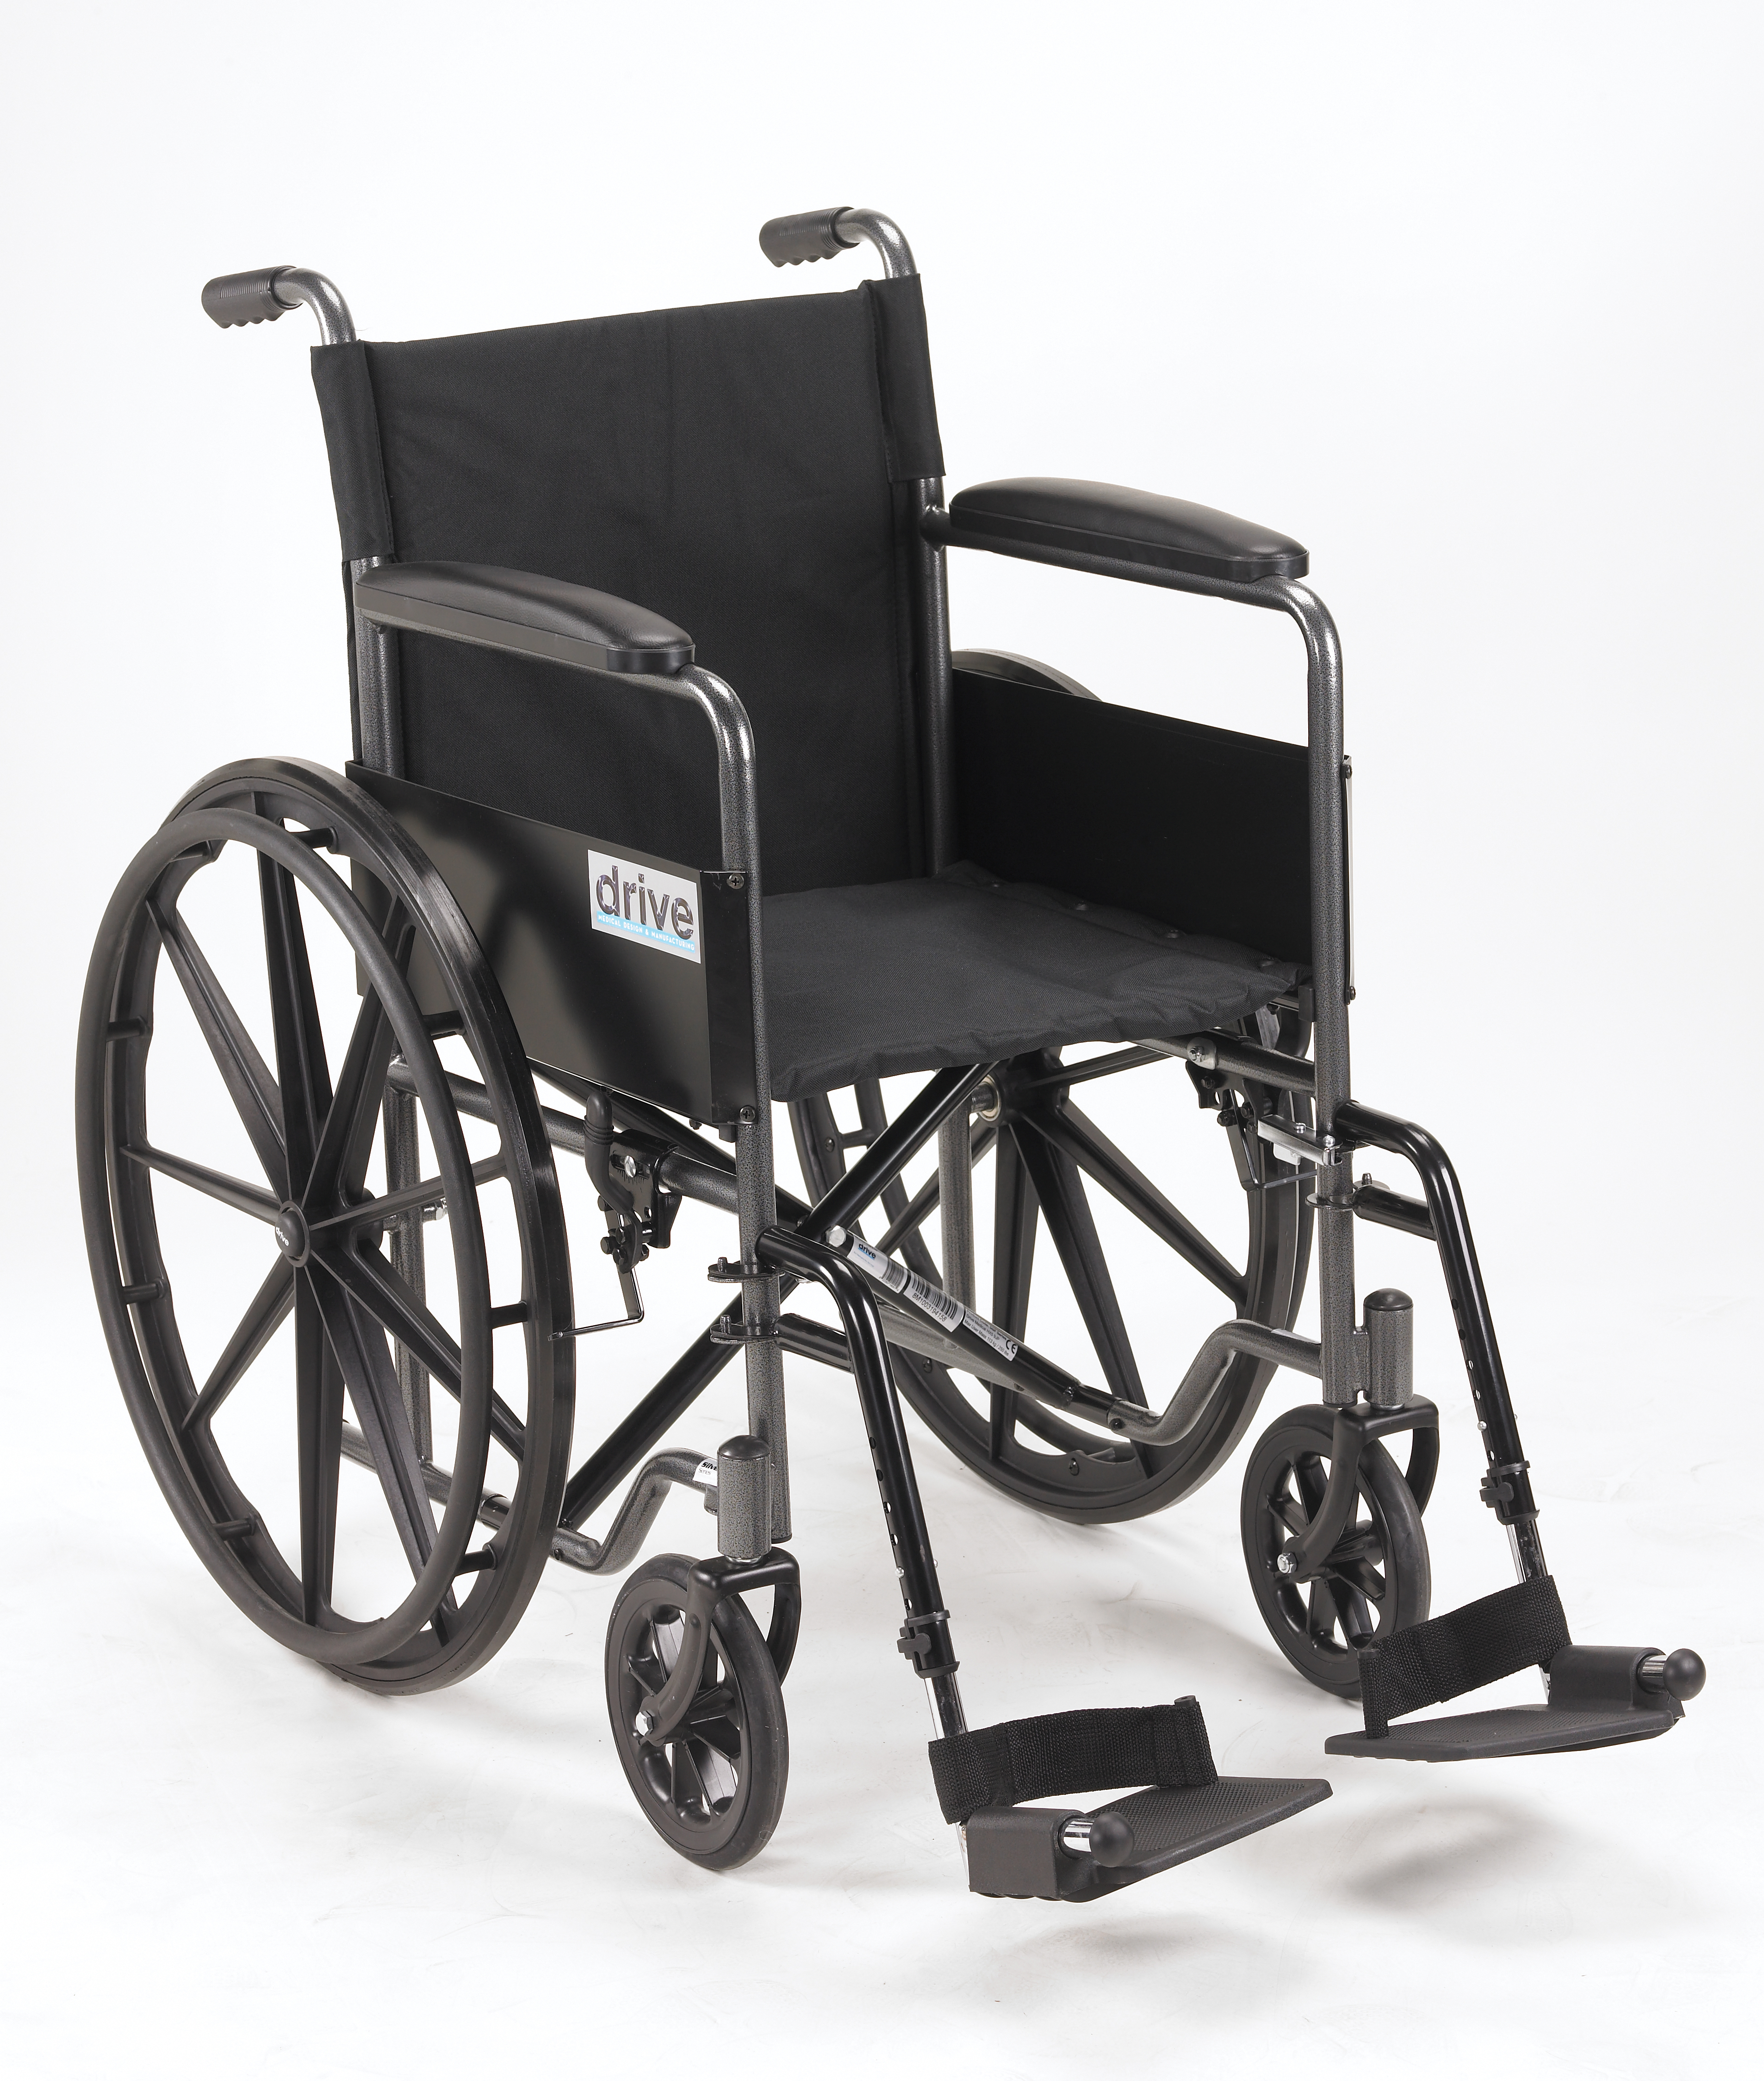 Drive Silver Sport 1 Wheelchair with Full Arms and Swing away Removable Footrest